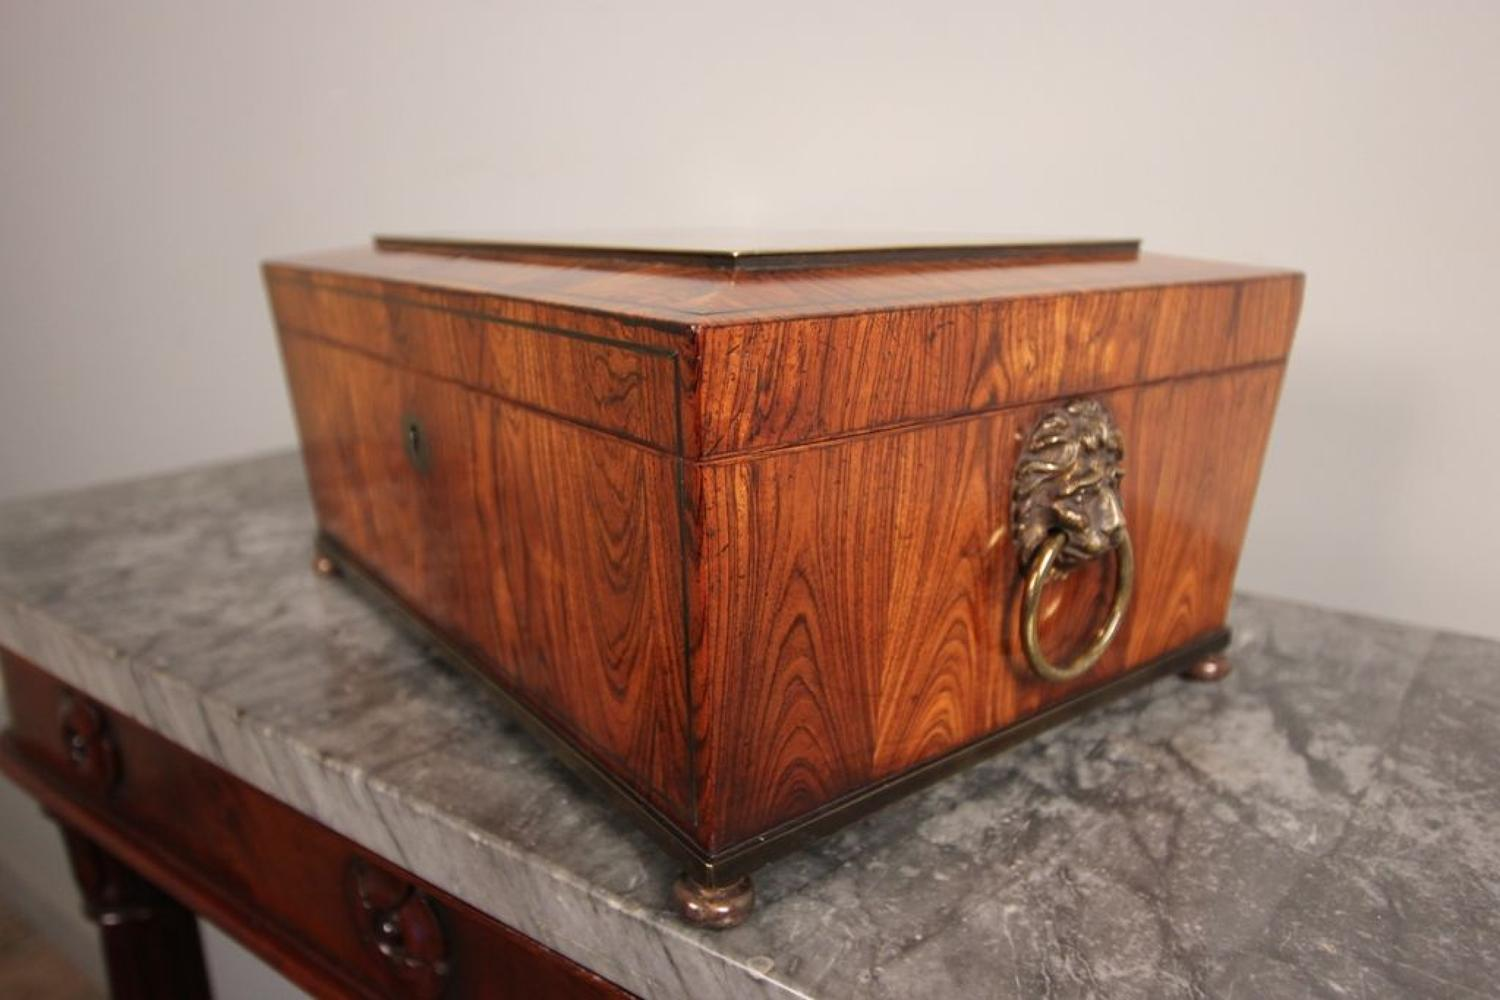 Wonderful Regency Tulipwood Box by Edwards of London